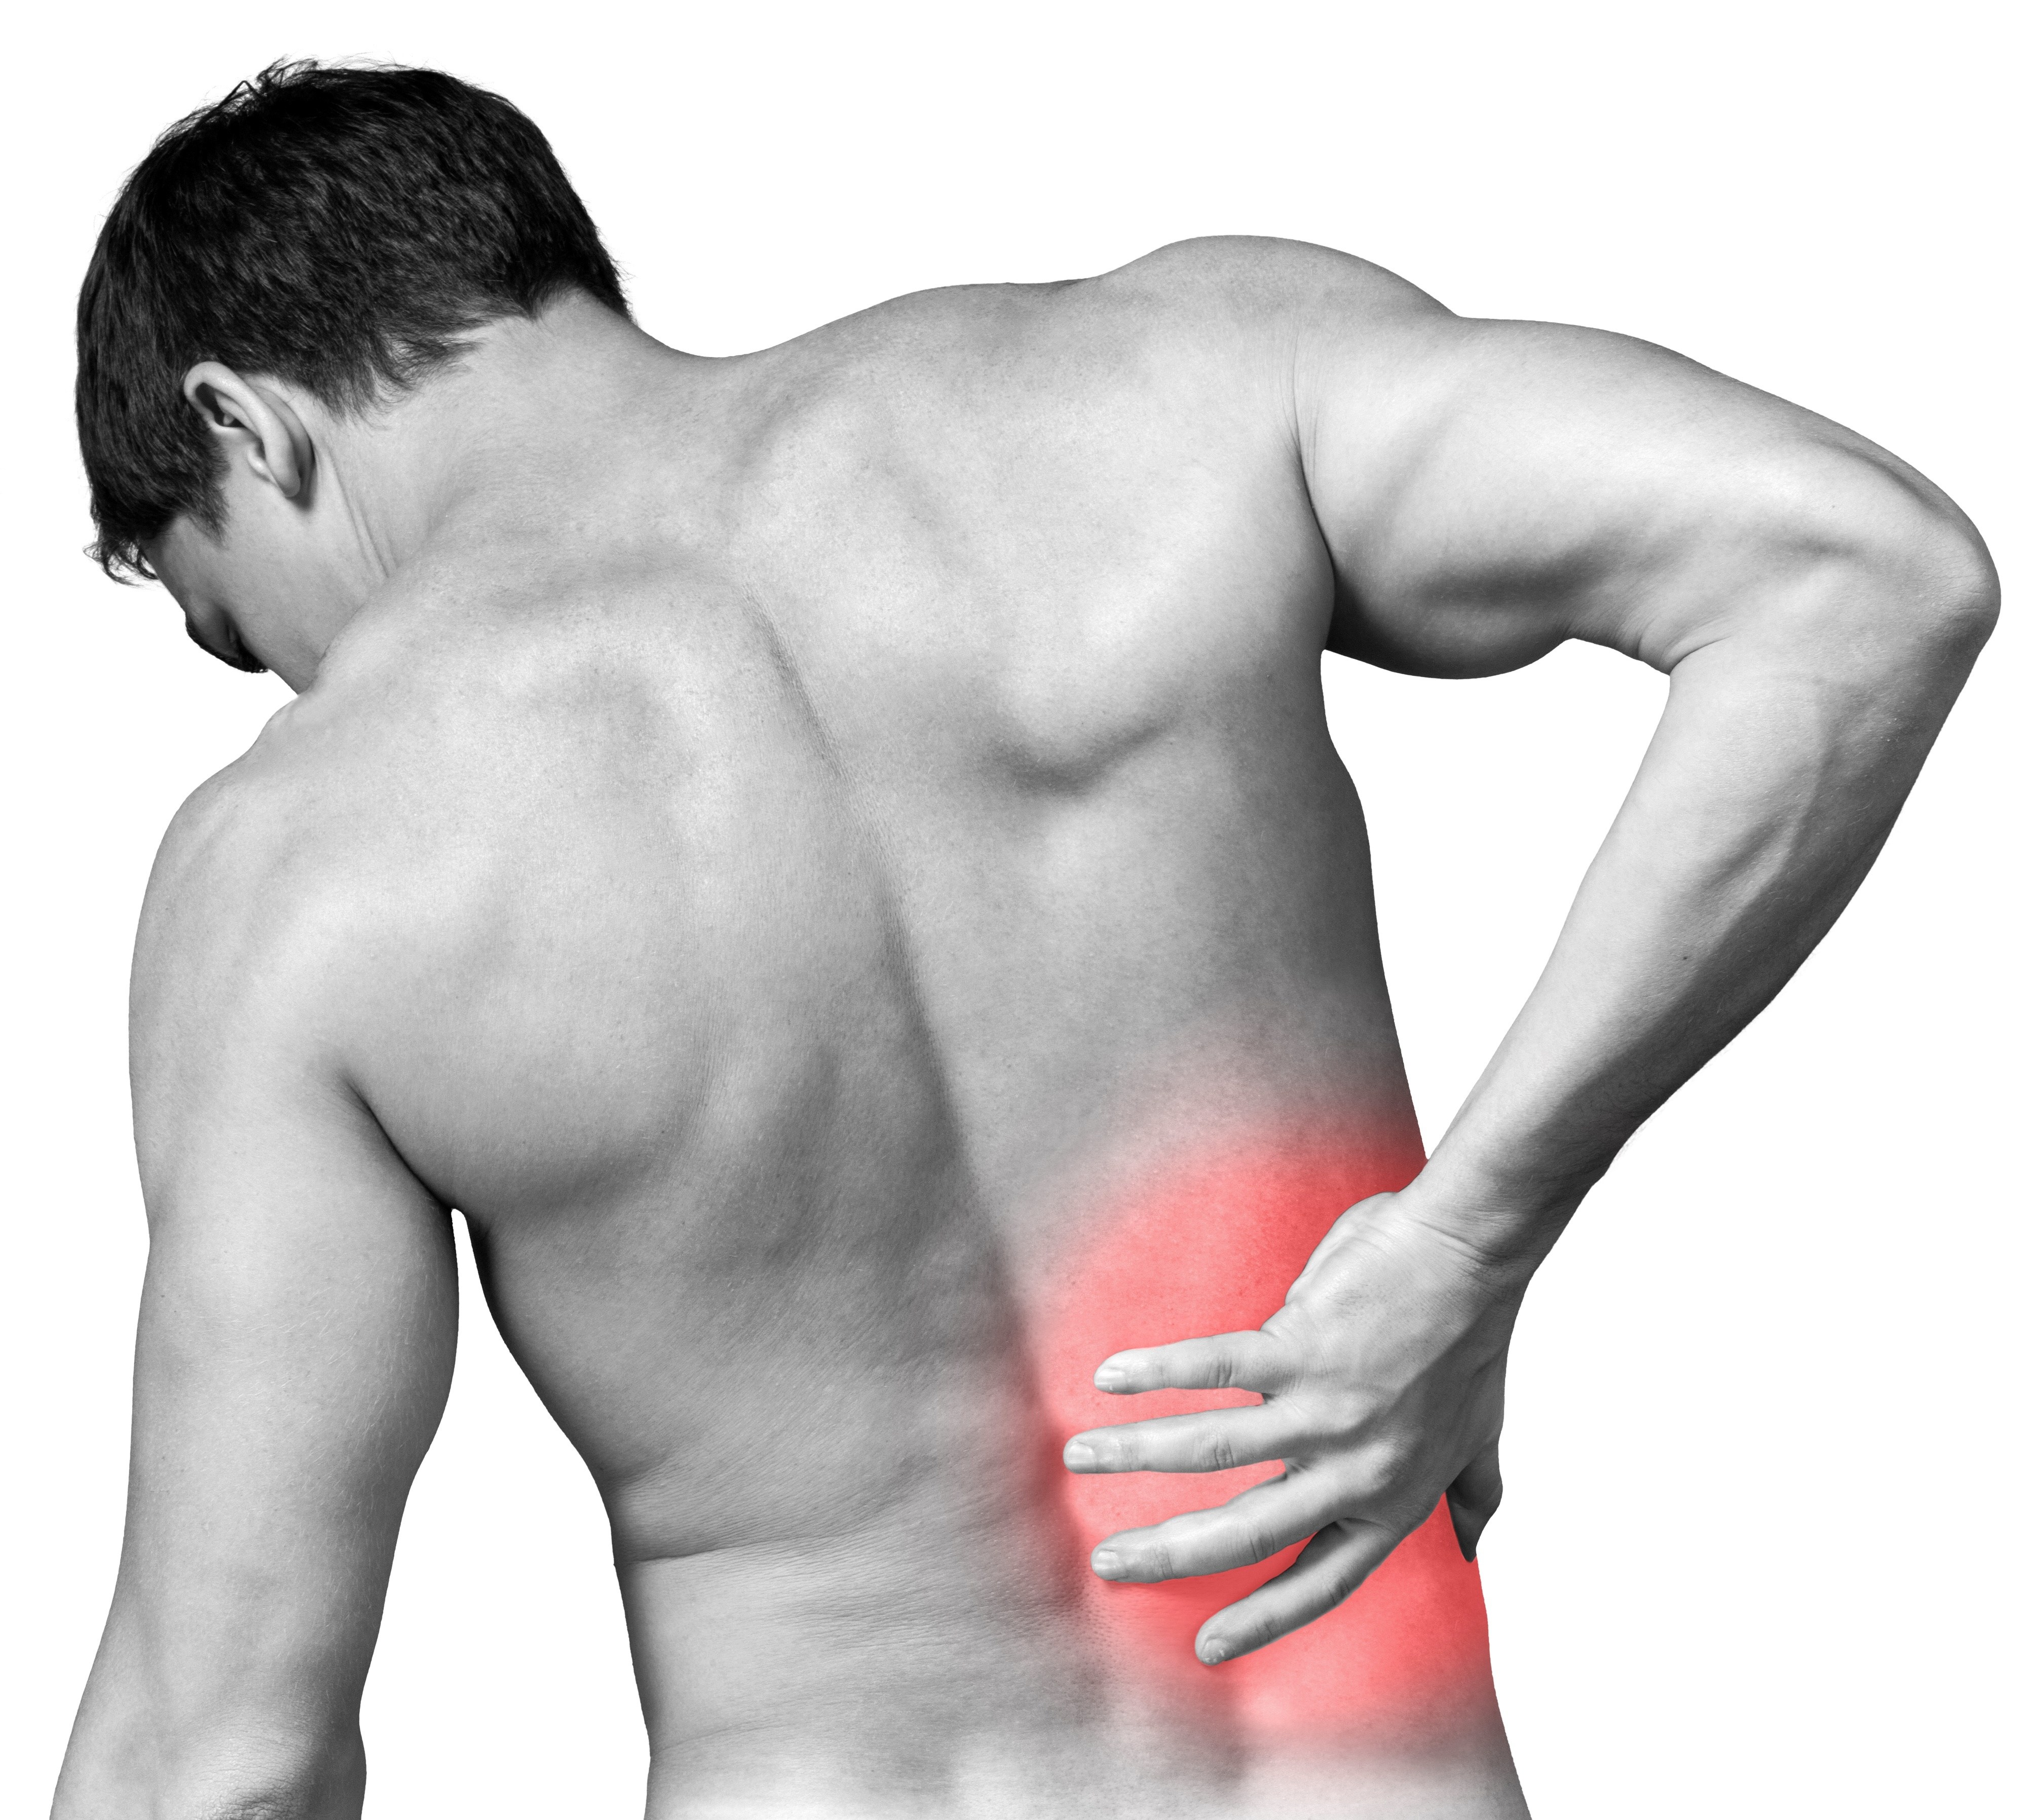 Finding Lasting Relief For Coccyx Pain